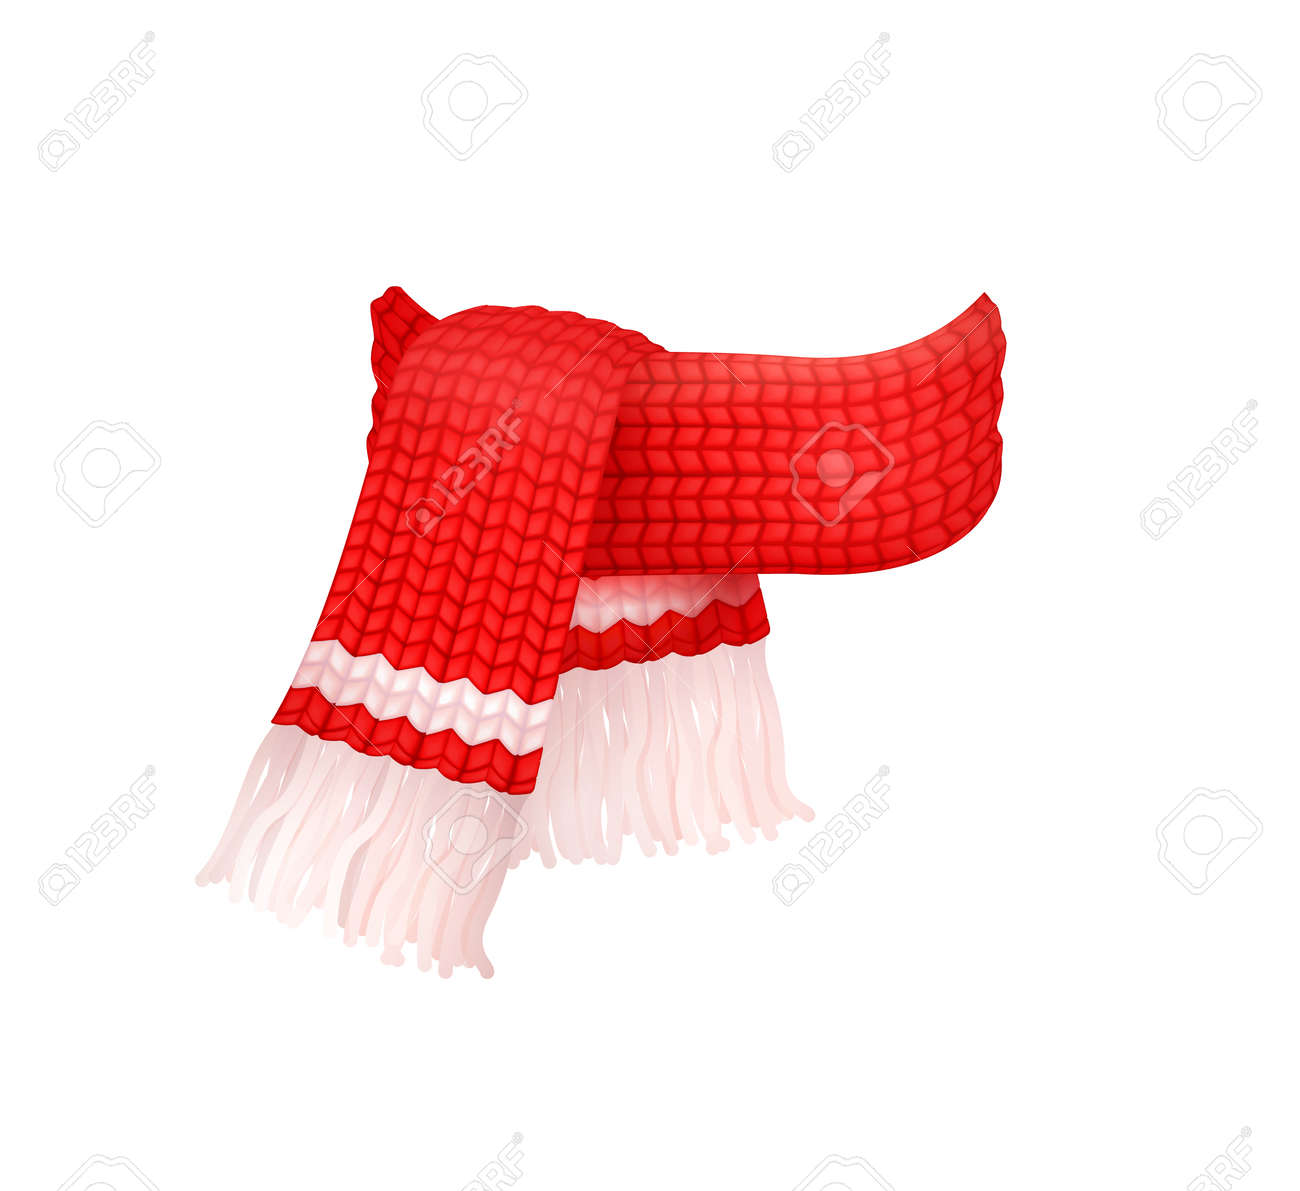 Red Knitted Scarf With White Woolen Threads Isolated Vector Icon Royalty Free Cliparts Vectors And Stock Illustration Image 126377103